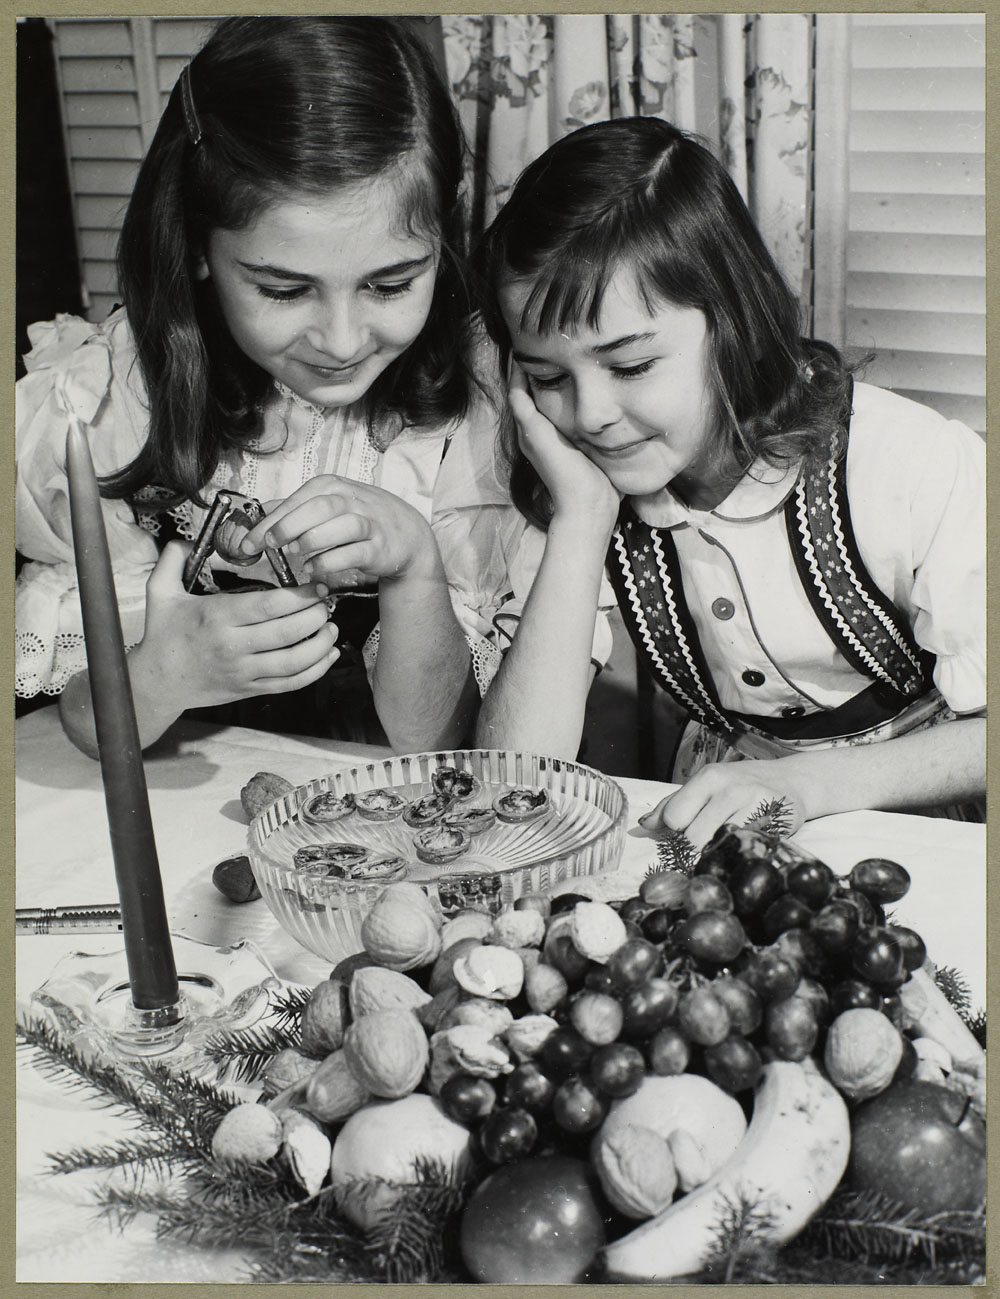 Two young Czech girls cracking walnuts at the dinner table (between 1930 and 1960)